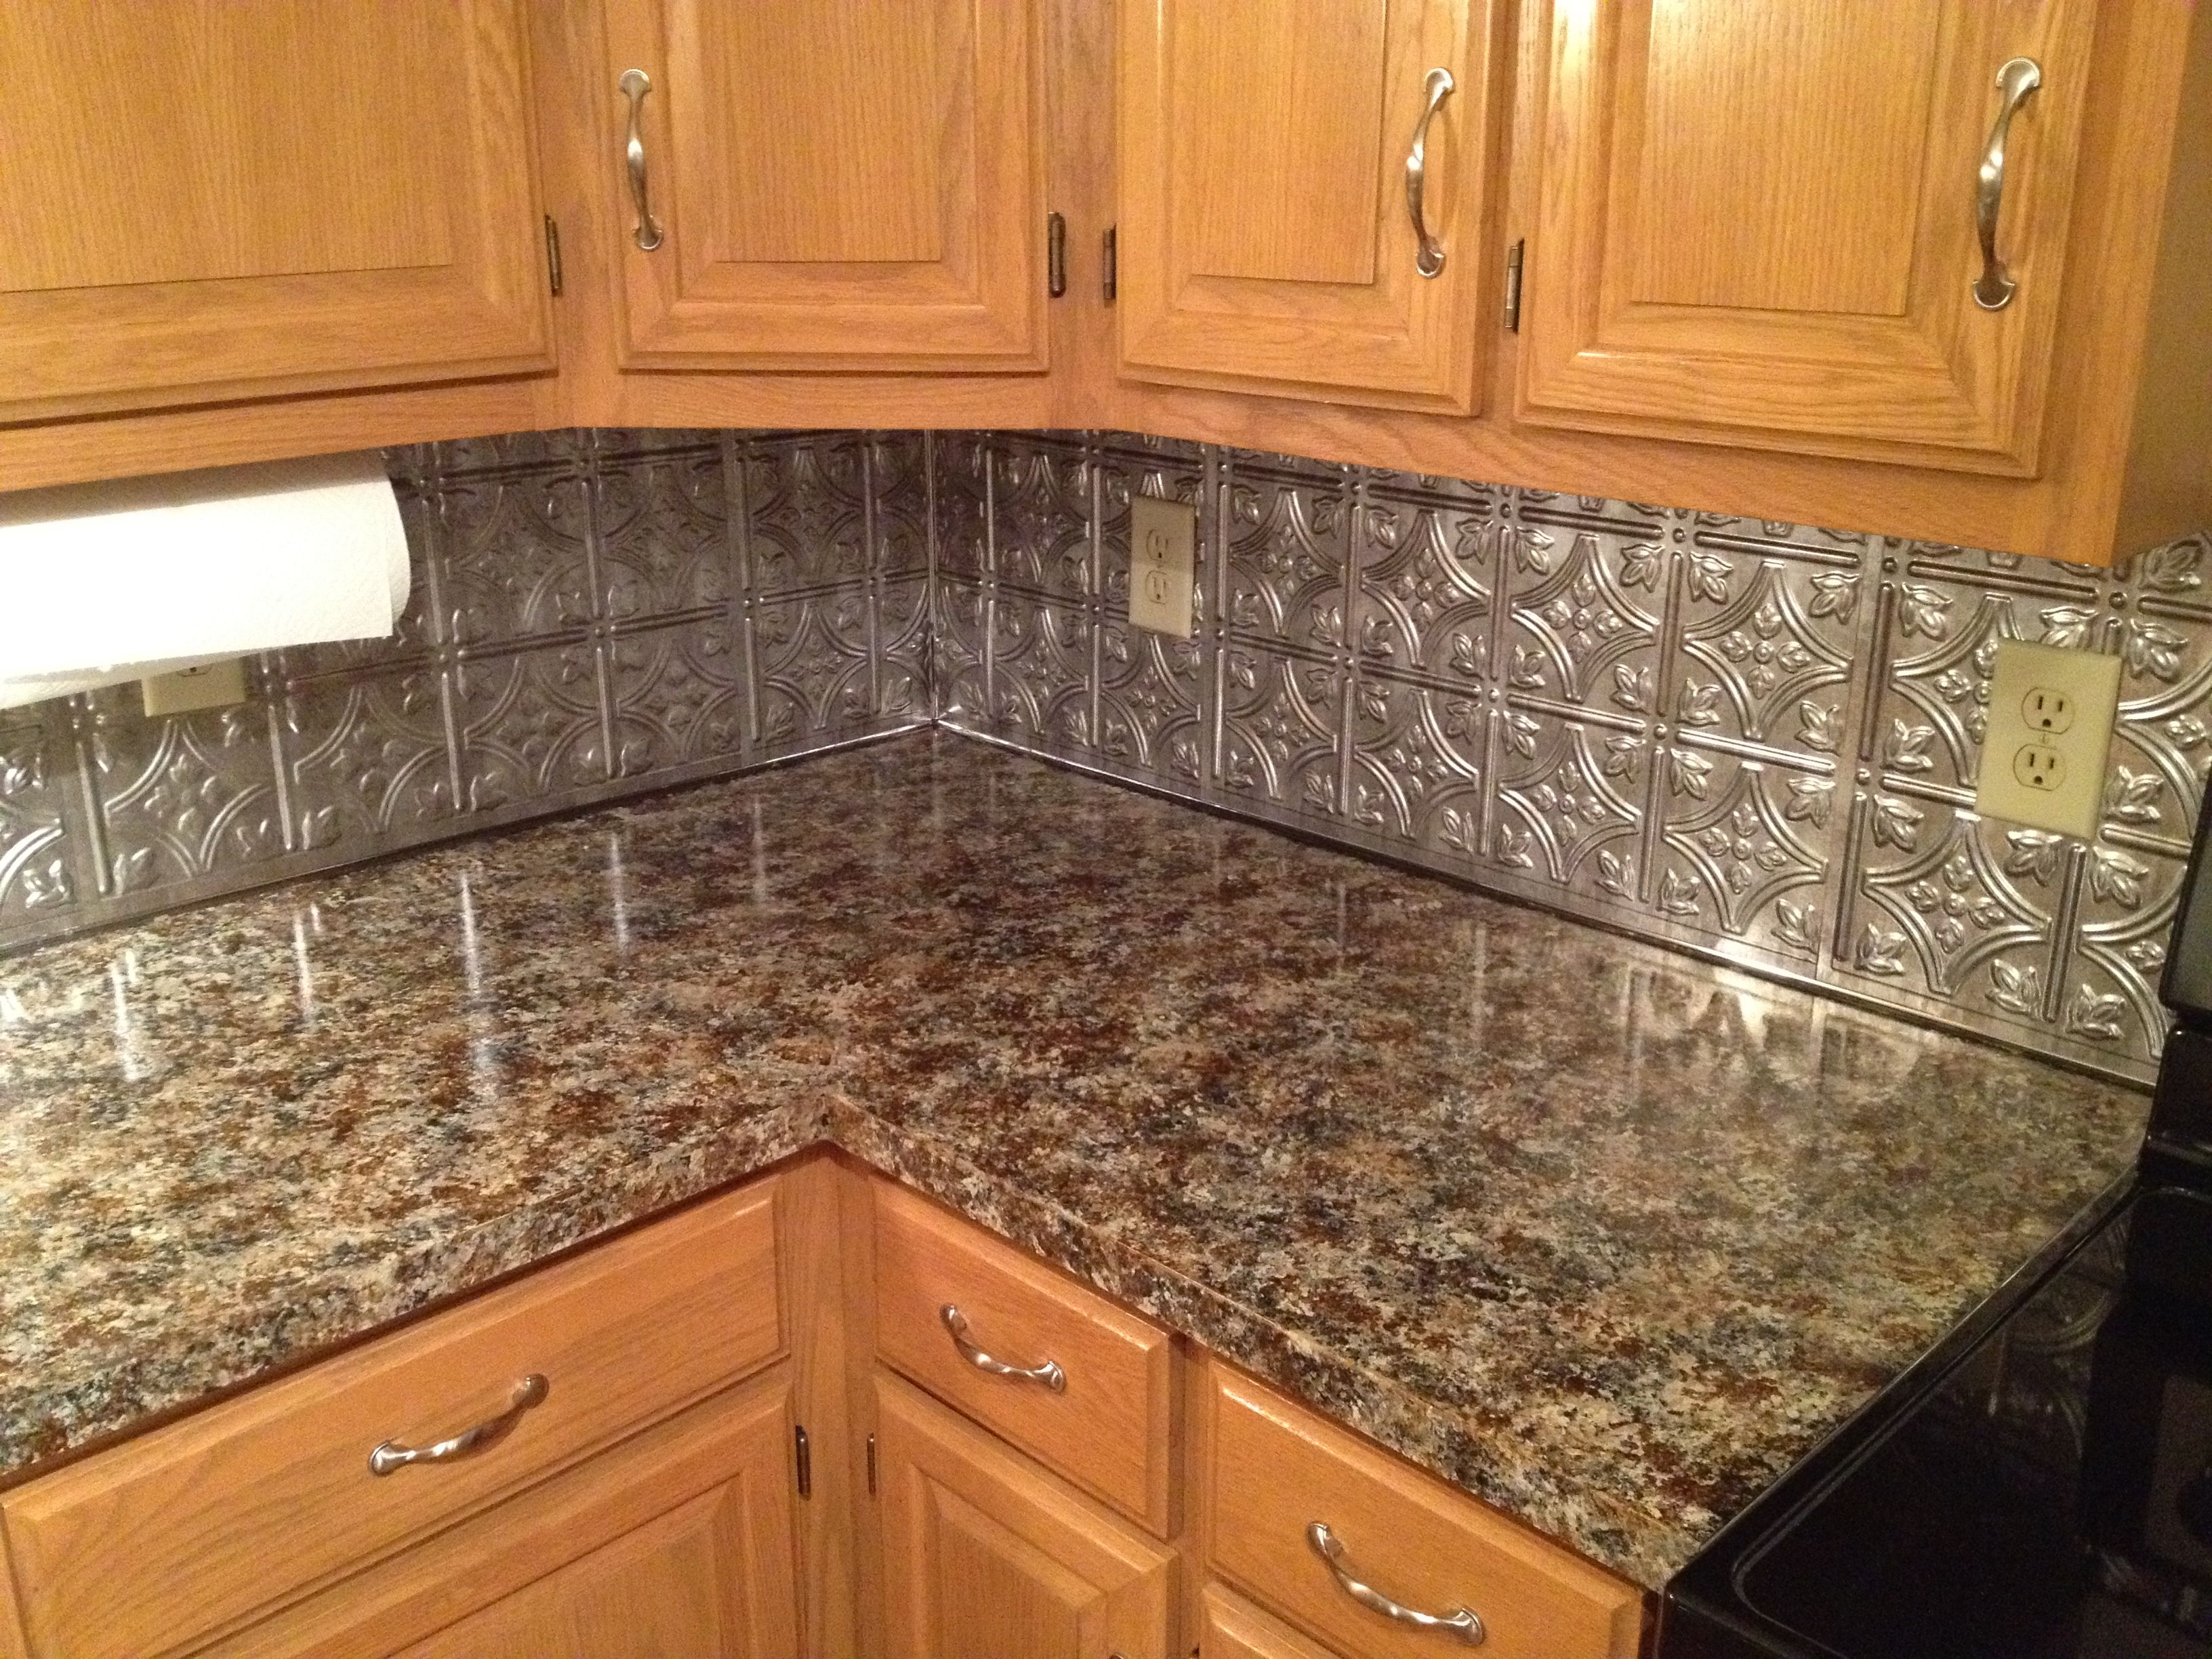 Kitchen counter top back splash make over for under 300 Lowes countertops